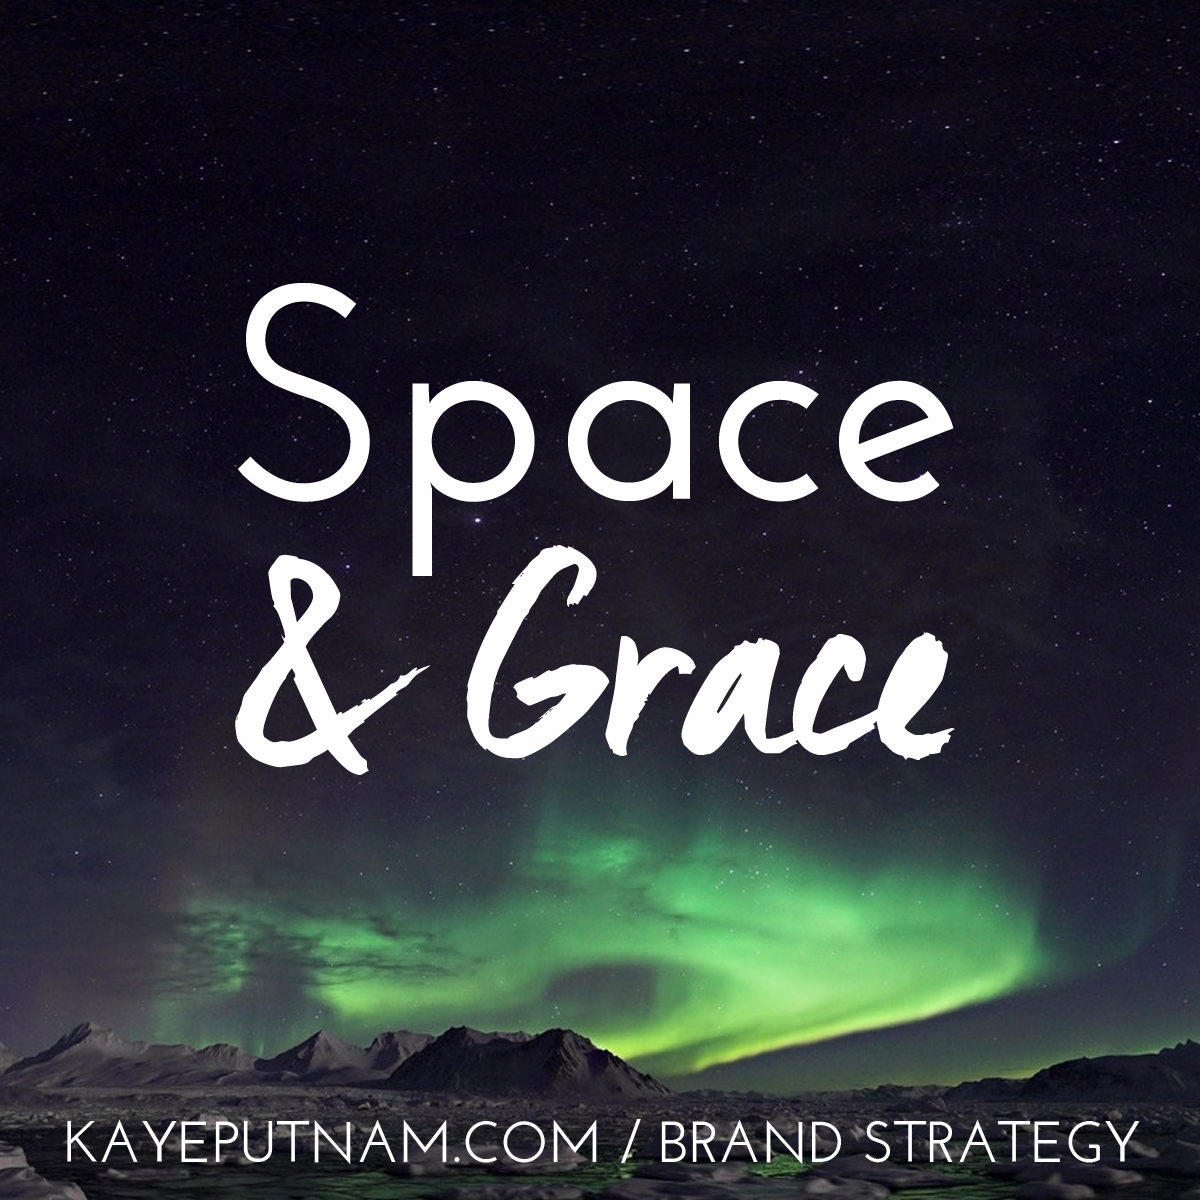 Space & grace. #InDemandBrand